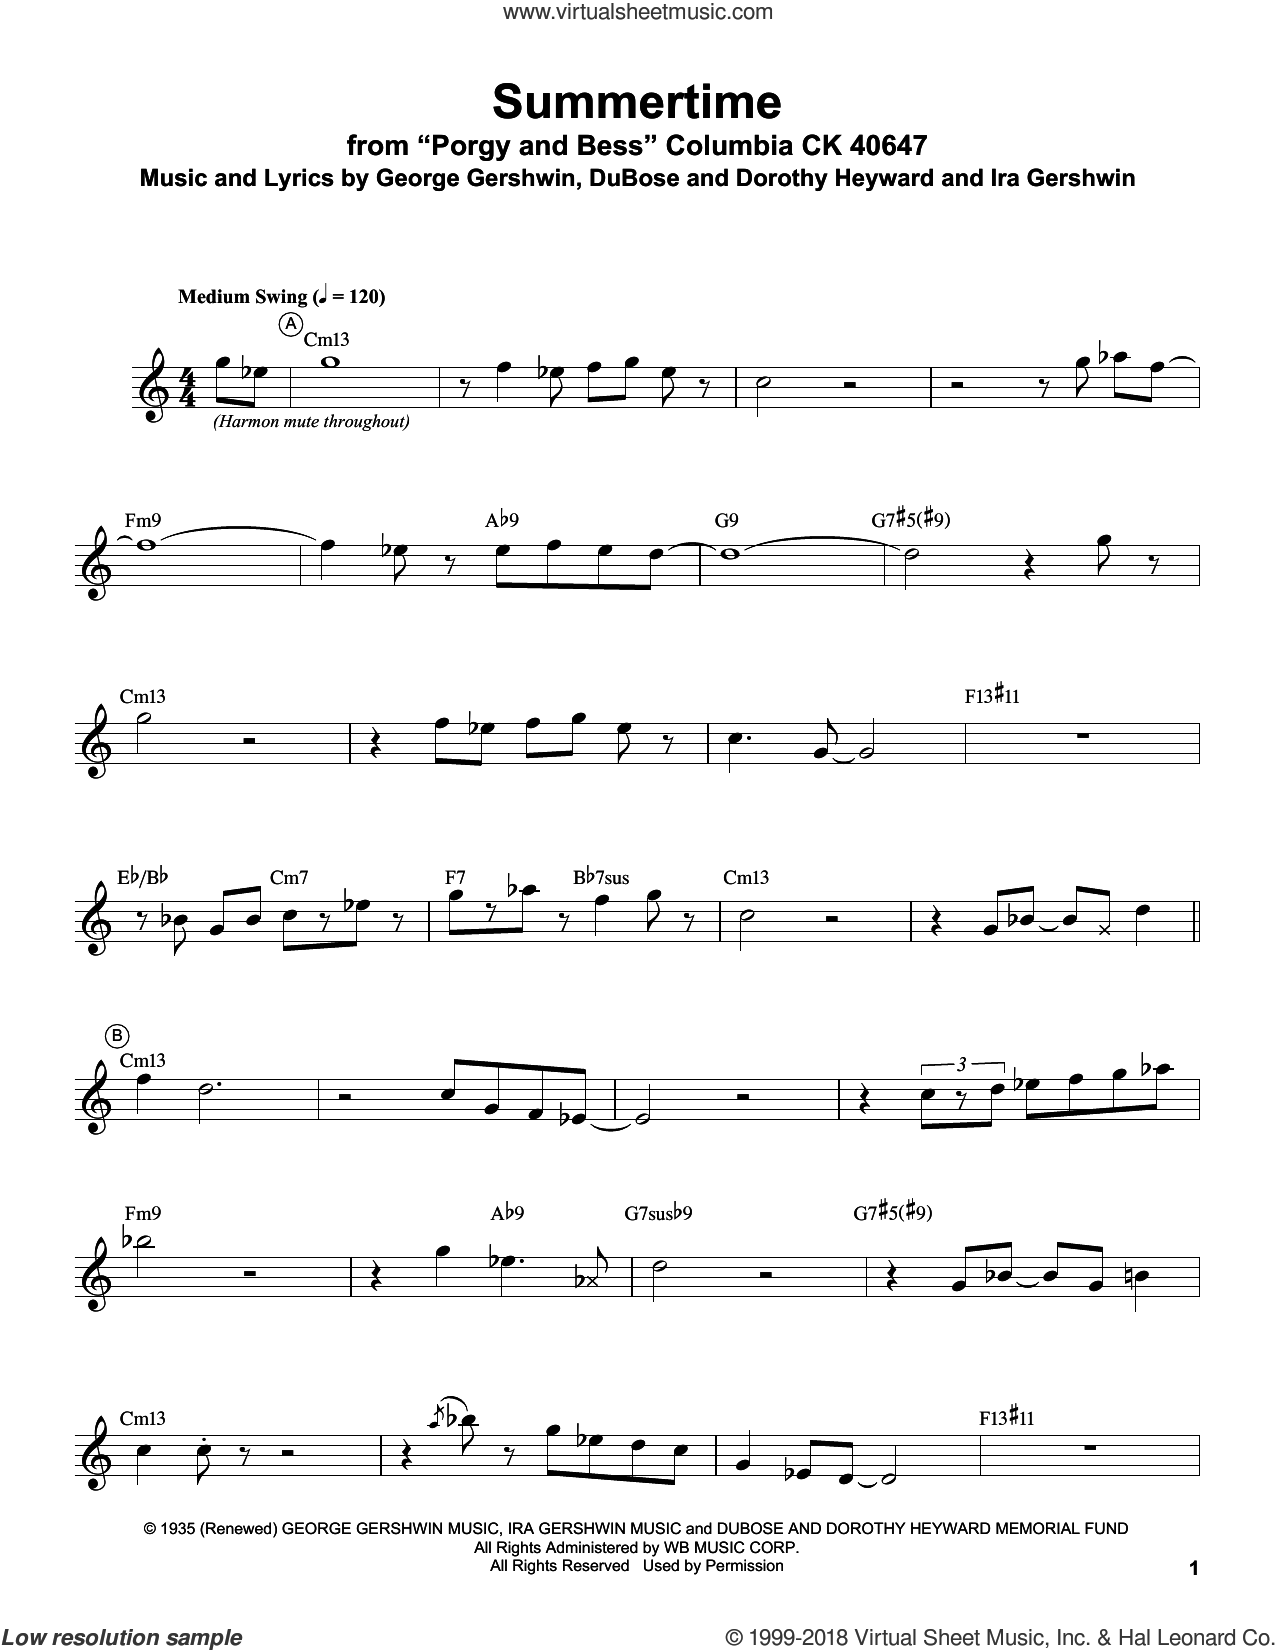 Summertime sheet music for trumpet solo (transcription) by Miles Davis, Dorothy Heyward, DuBose Heyward, George Gershwin and Ira Gershwin, intermediate trumpet (transcription)